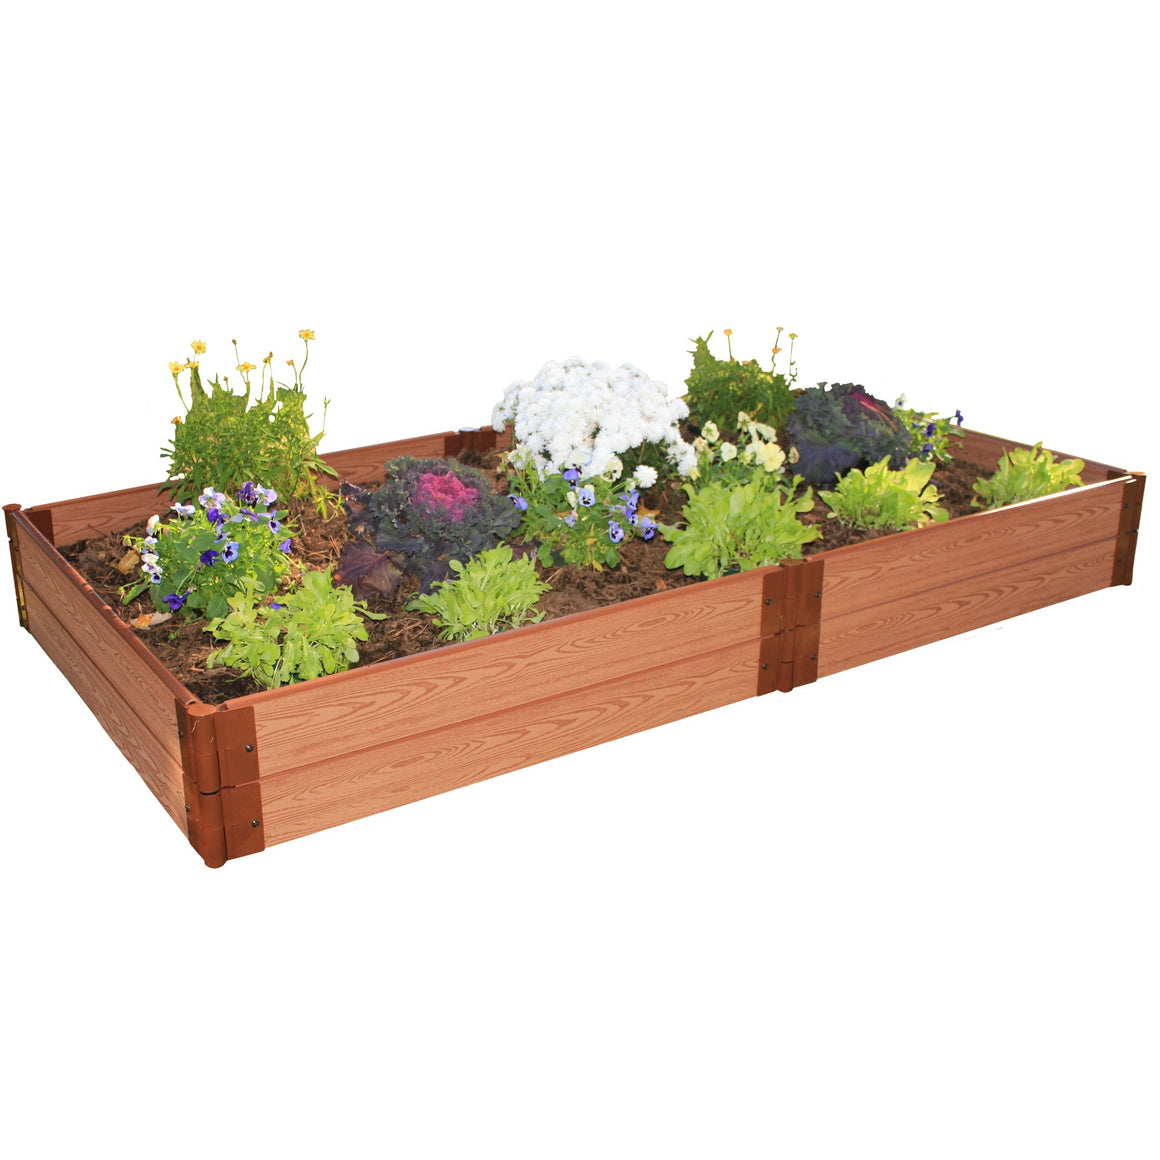 "Raised Garden Bed-Composite 4'X8' Rectangle 2 Level (1"" Profile) shown on white background filled with plants"